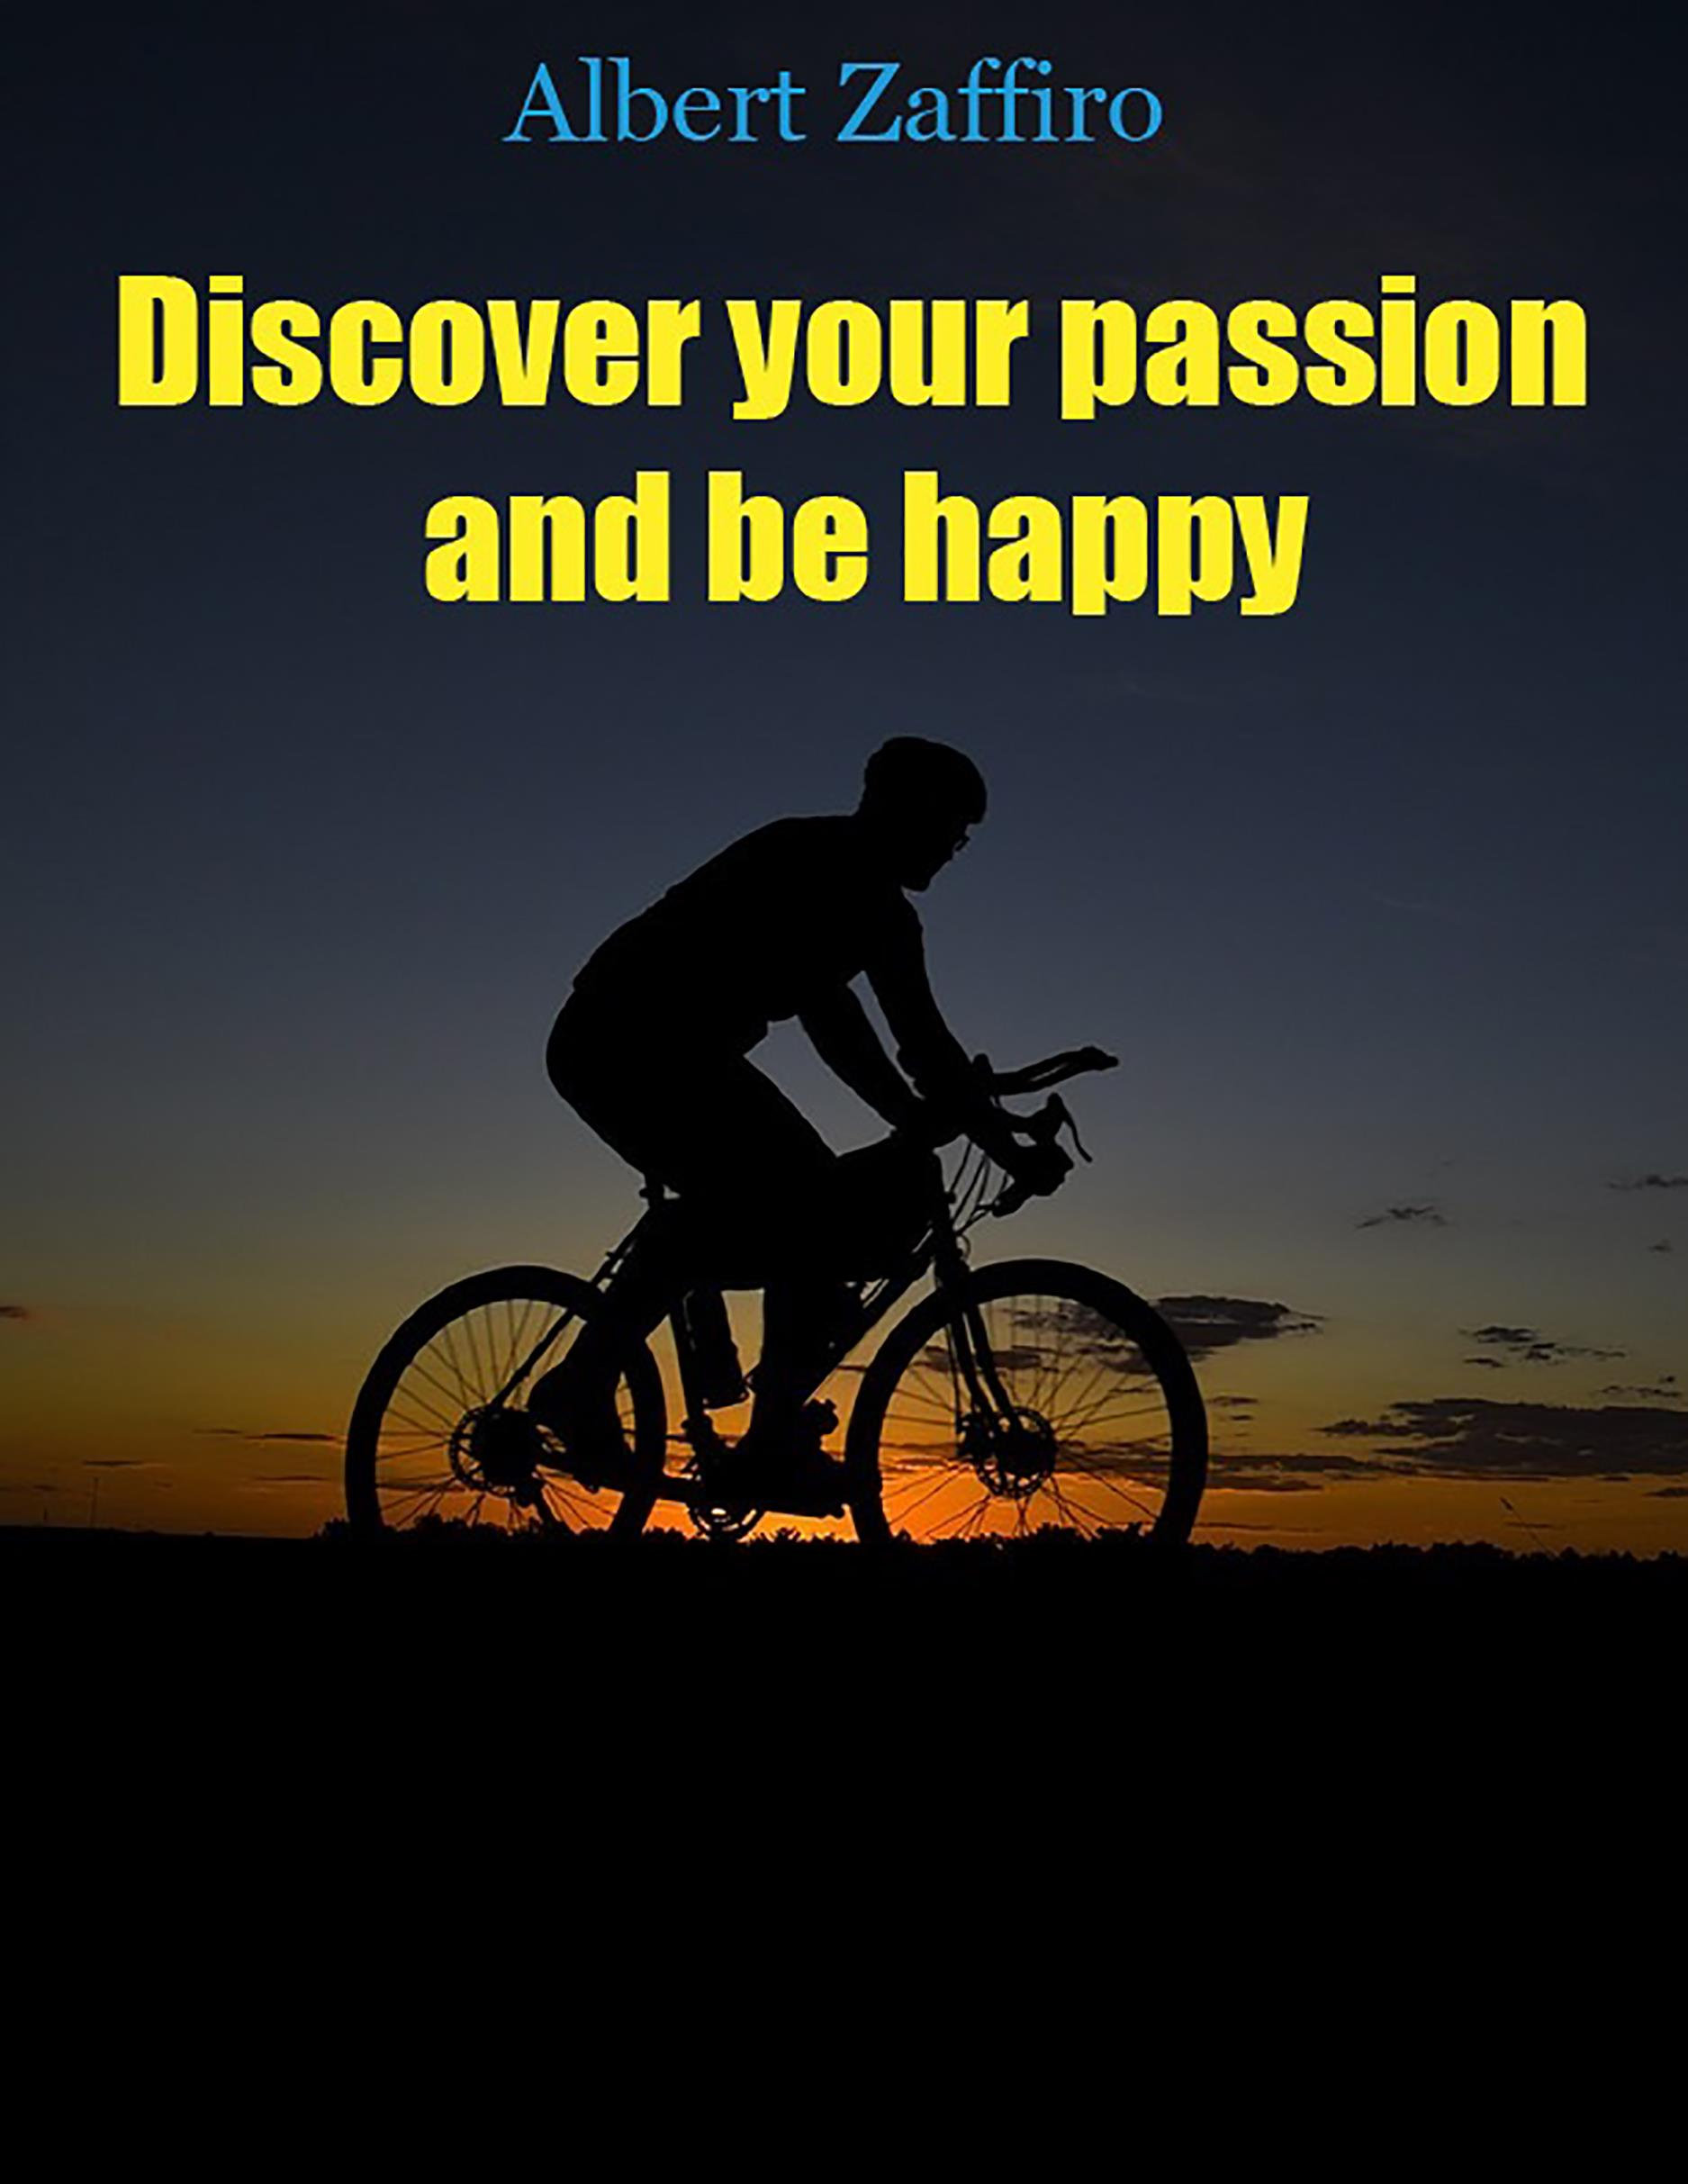 Discover your passion and be happy